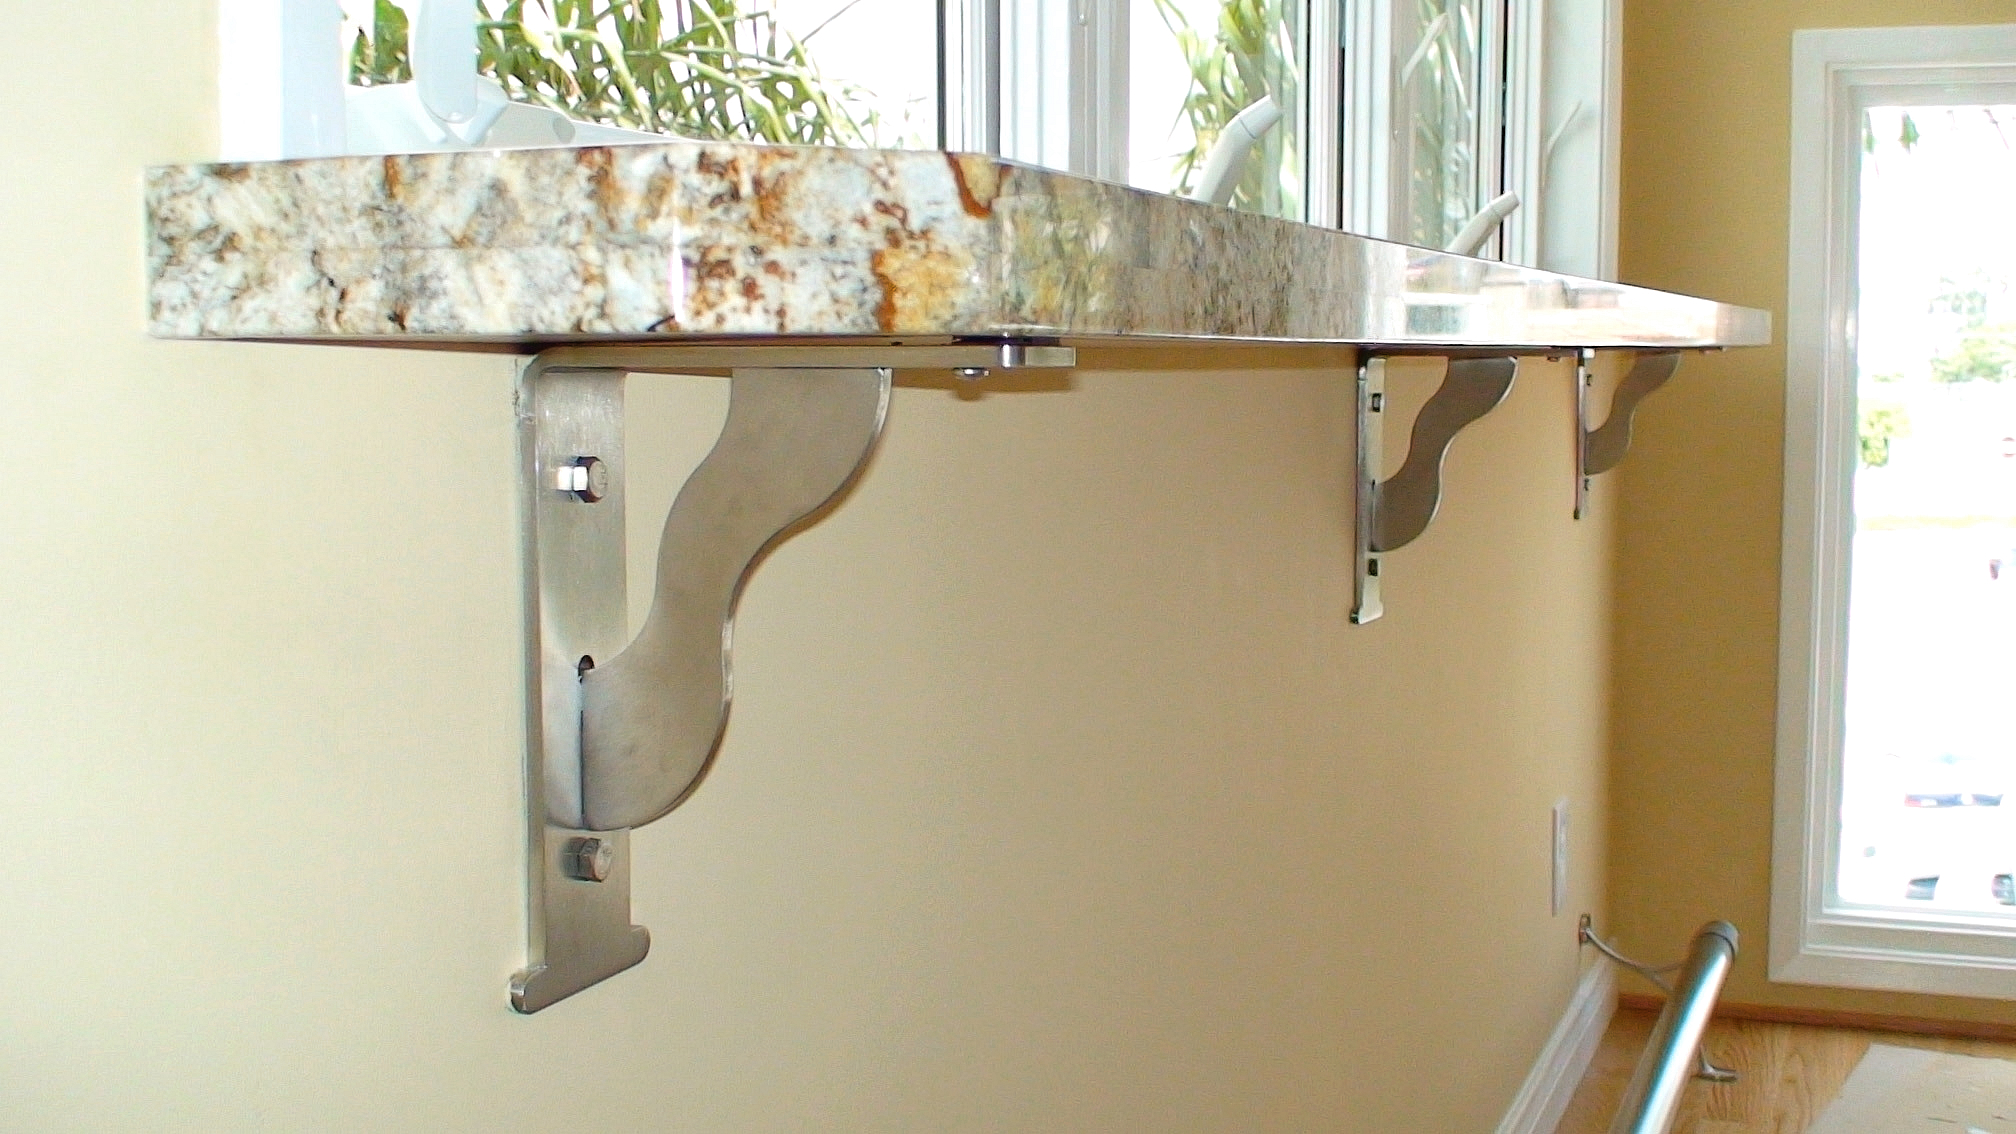 Floating Countertop Supports Outwater Introduces Its Steel Countertop Support Brackets